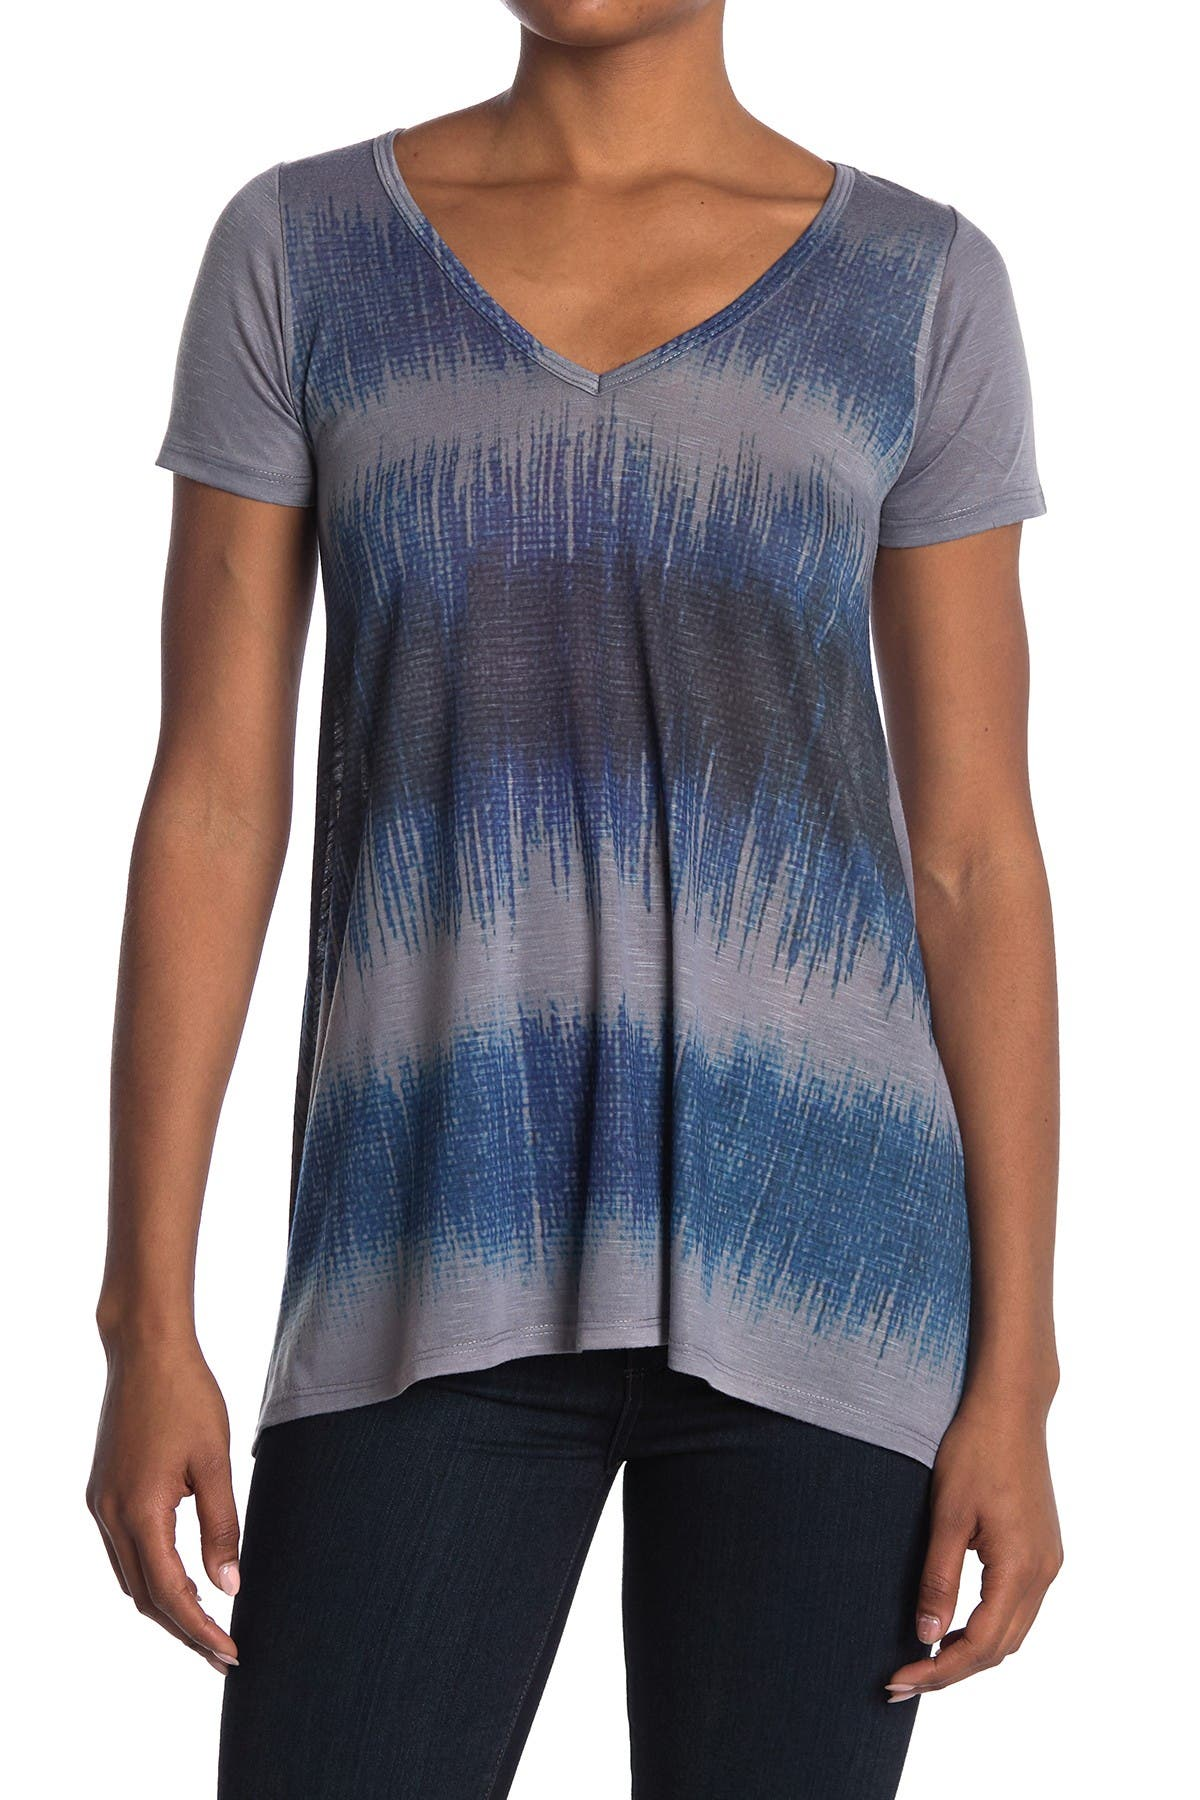 Image of Go Couture Printed V-Neck Asymmetric Tunic